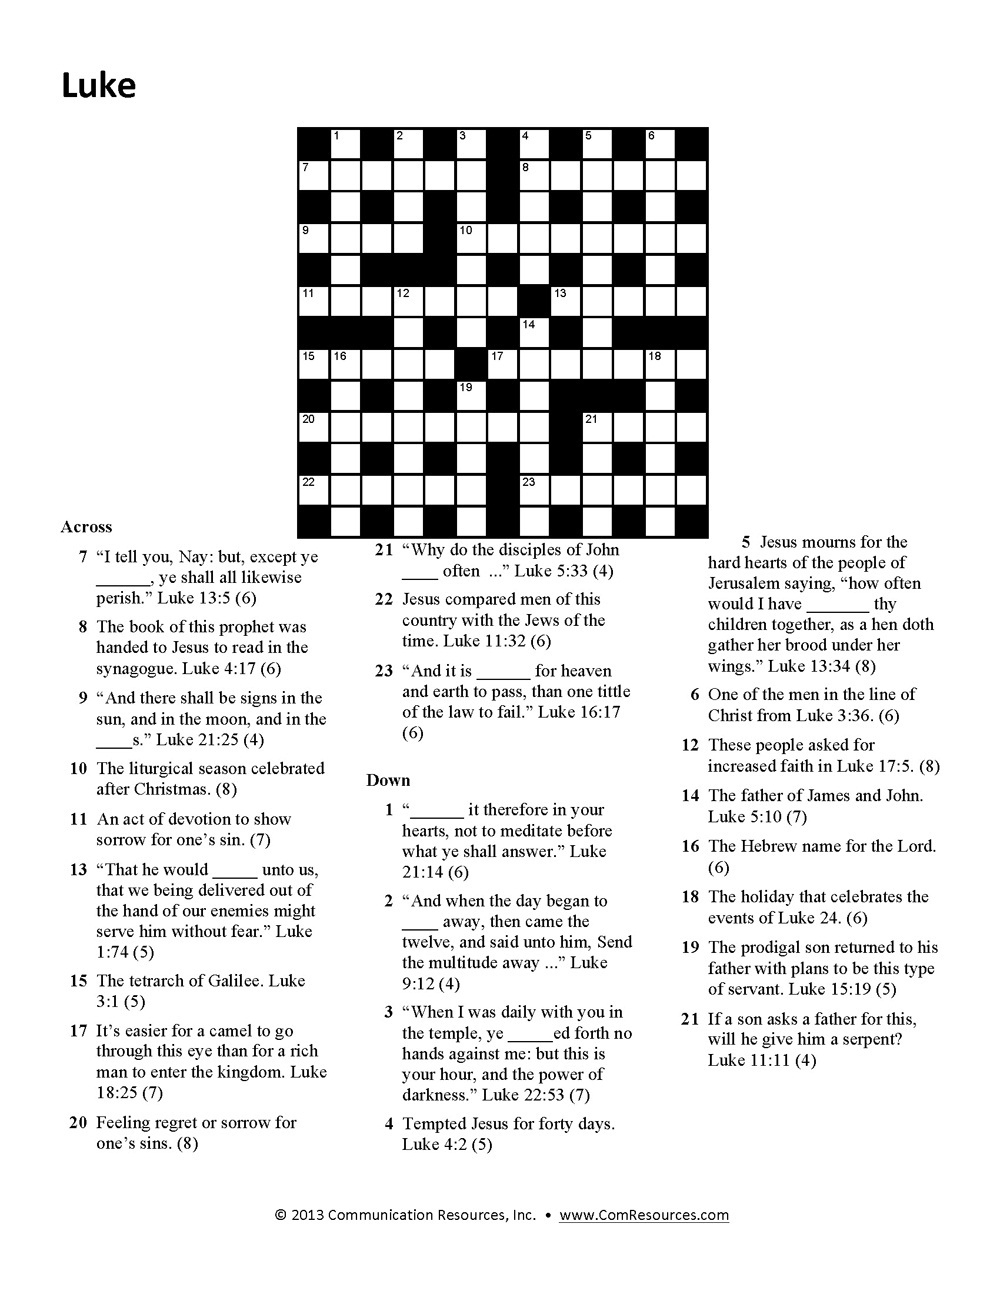 15 Fun Bible Crossword Puzzles | Kittybabylove - Free Printable Crossword Puzzles Uk